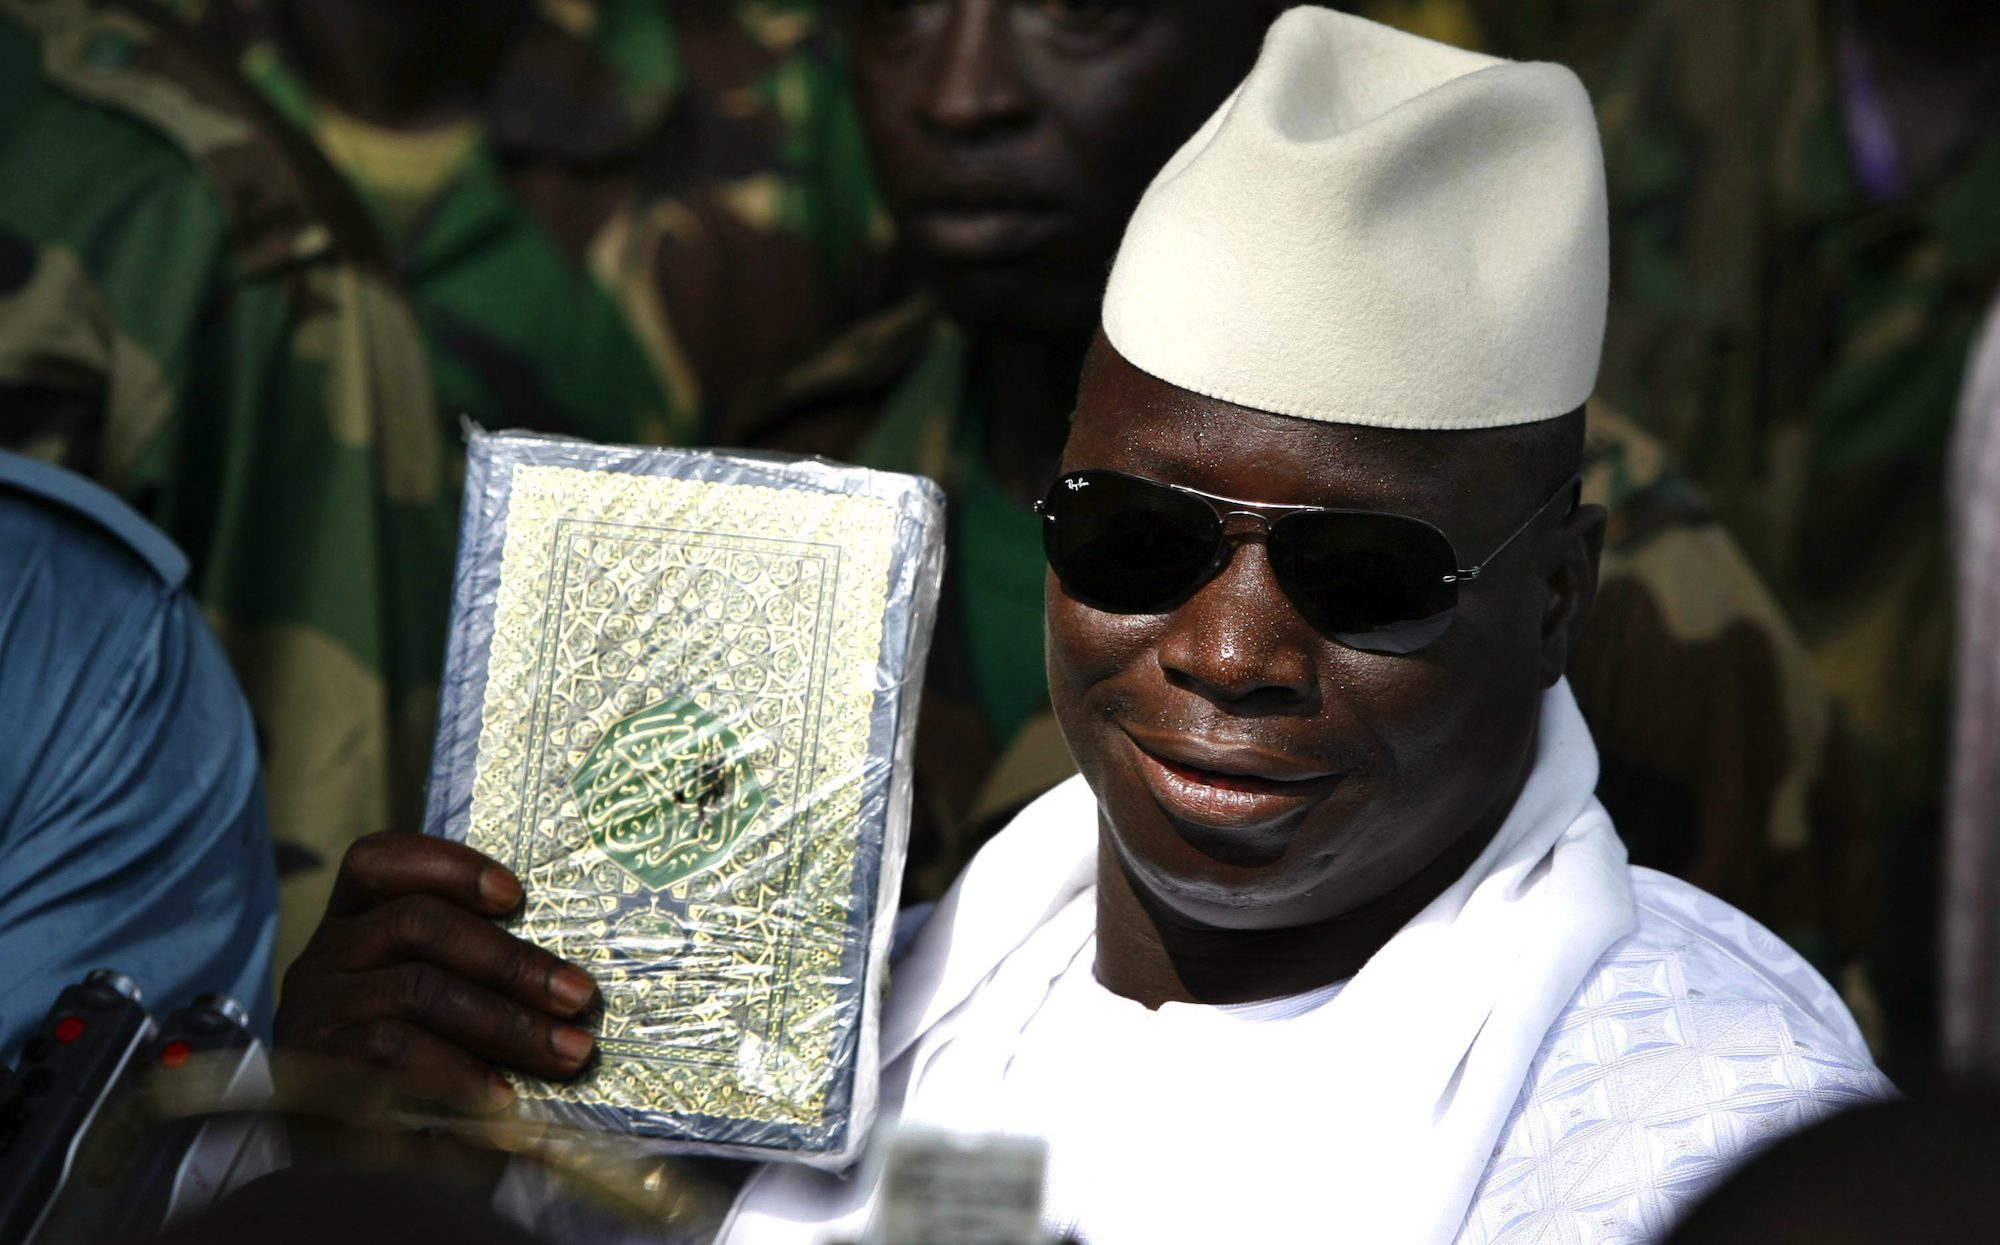 Gambian President Yahya Jammeh holds up a Koran while speaking to the media after casting his ballot in the presidential elections in Banjul September 22, 2006. Voters in the tiny West African nation of Gambia went to the polls on Friday in a presidential election widely expected to extend the iron-fisted rule of incumbent Jammeh for a third elected term.